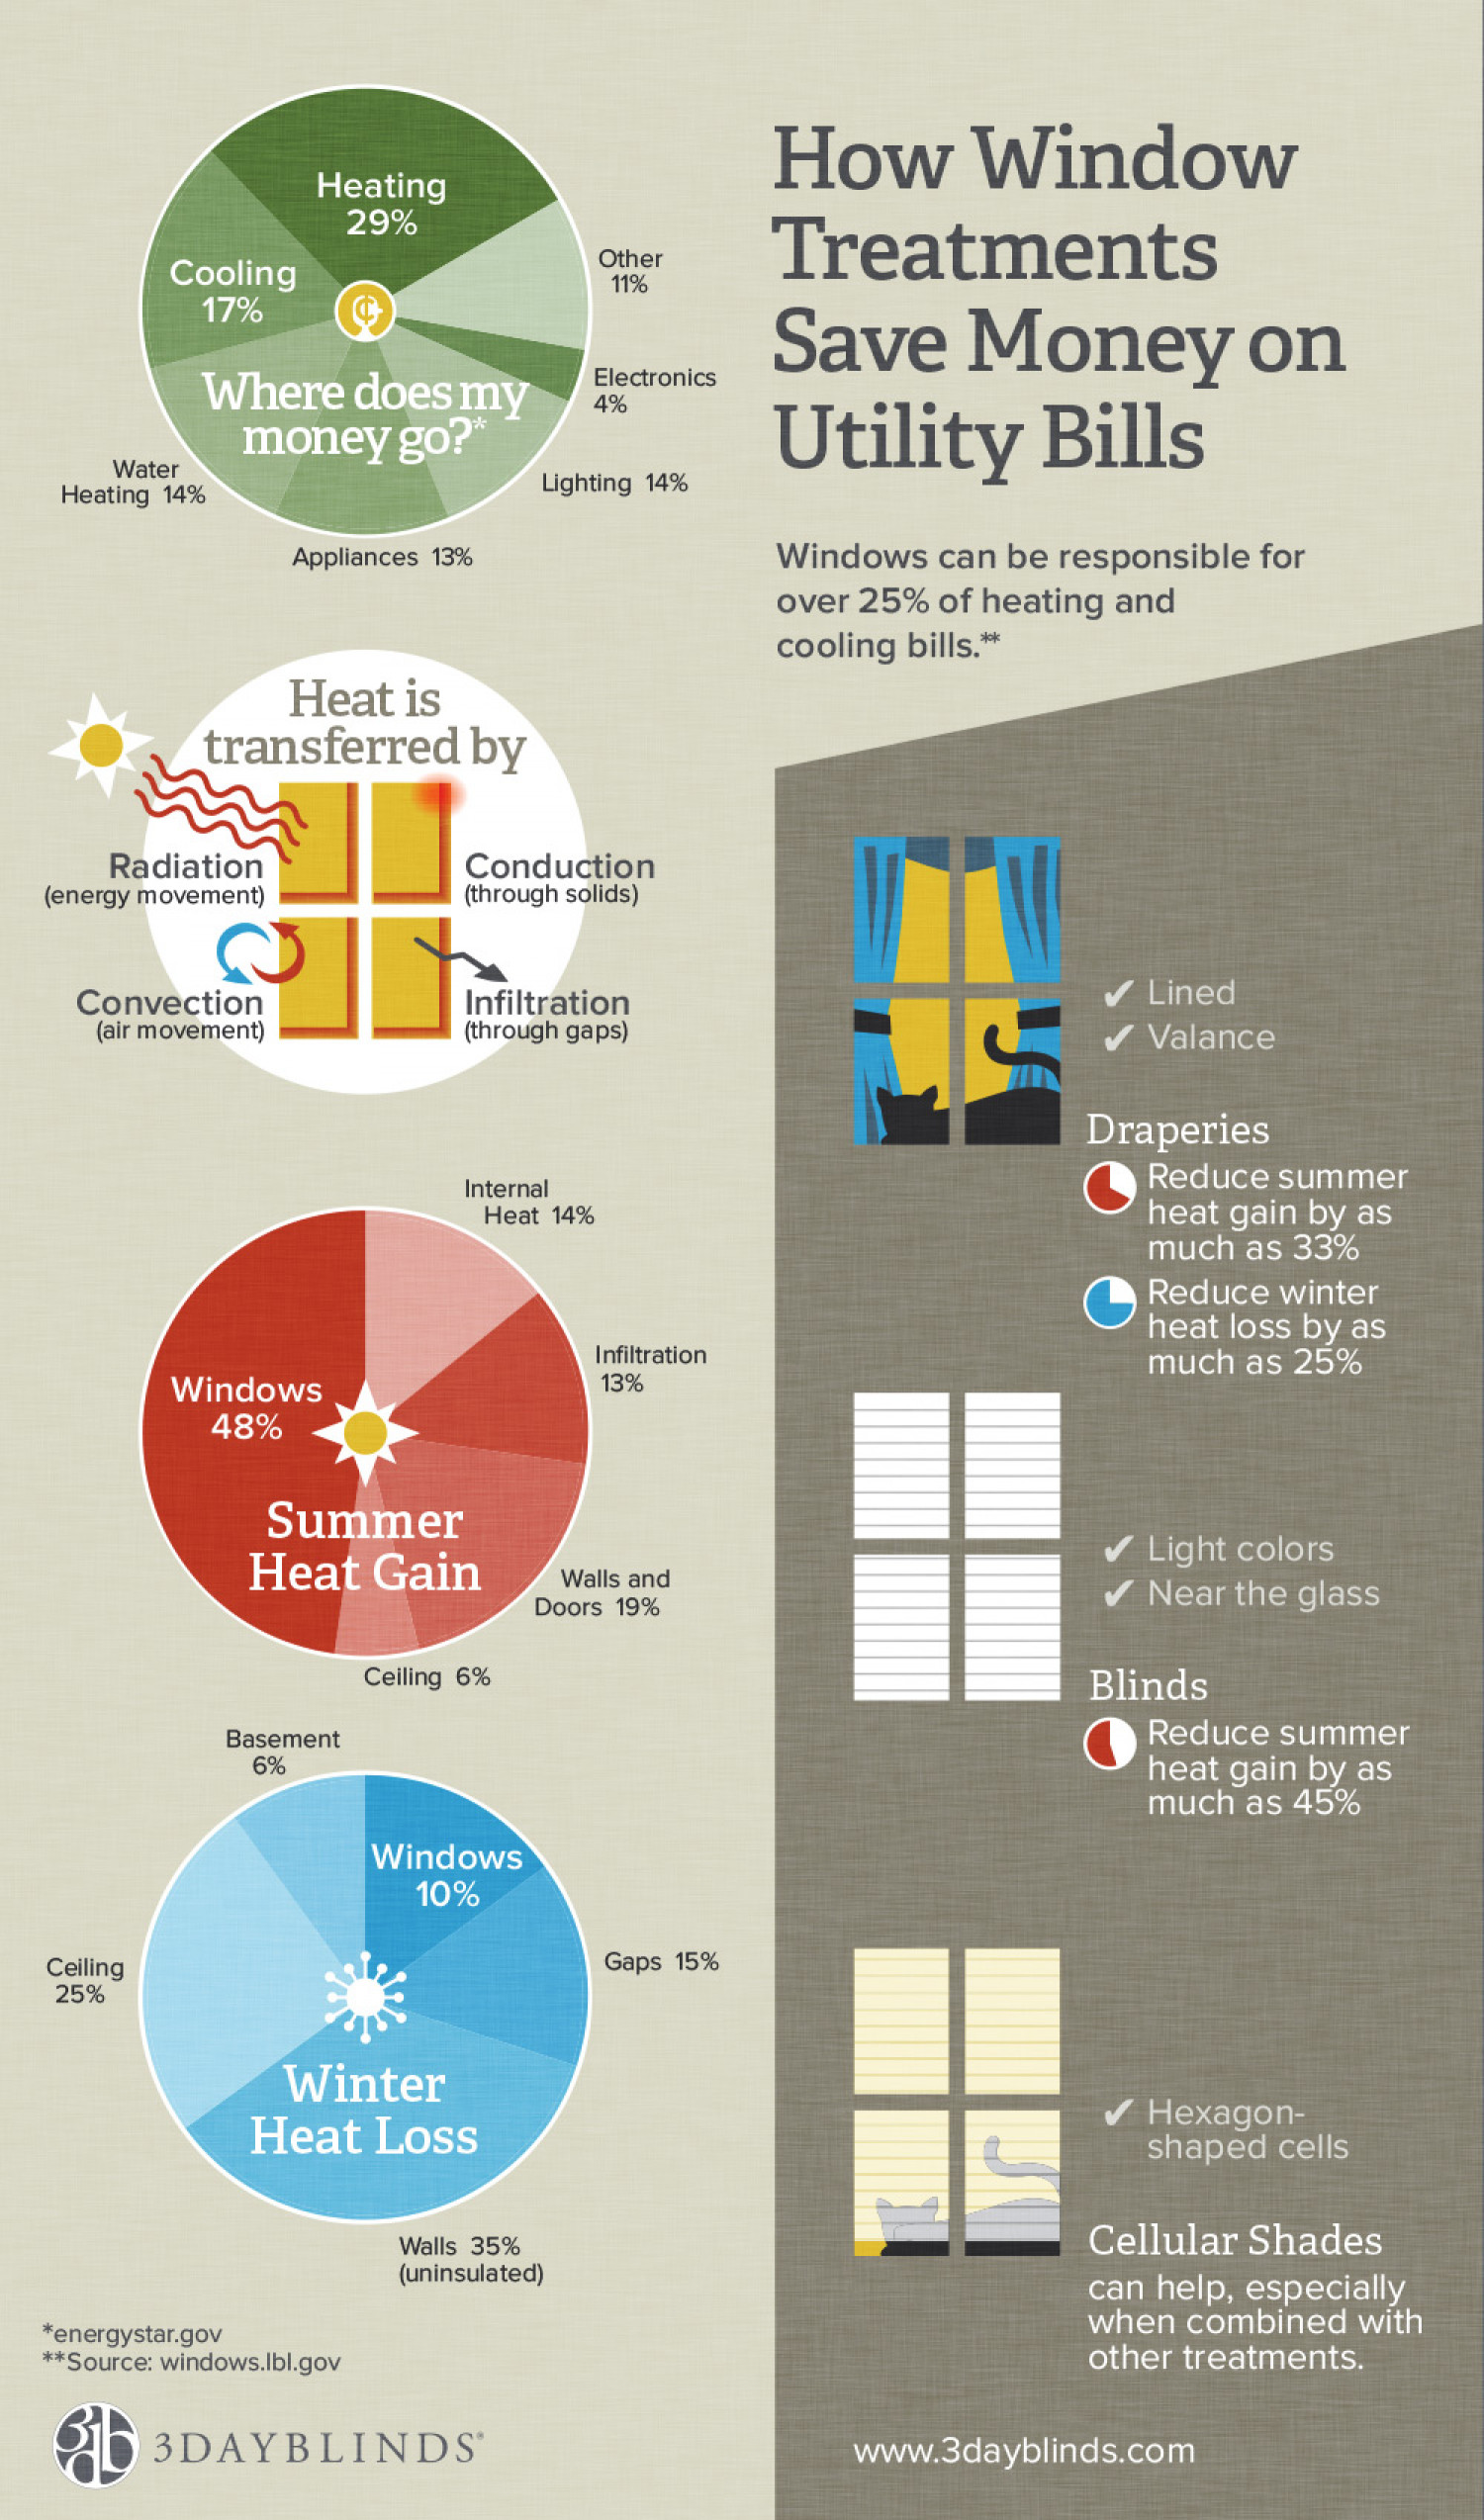 How Window Treatments Save Money on Utility Bills Infographic